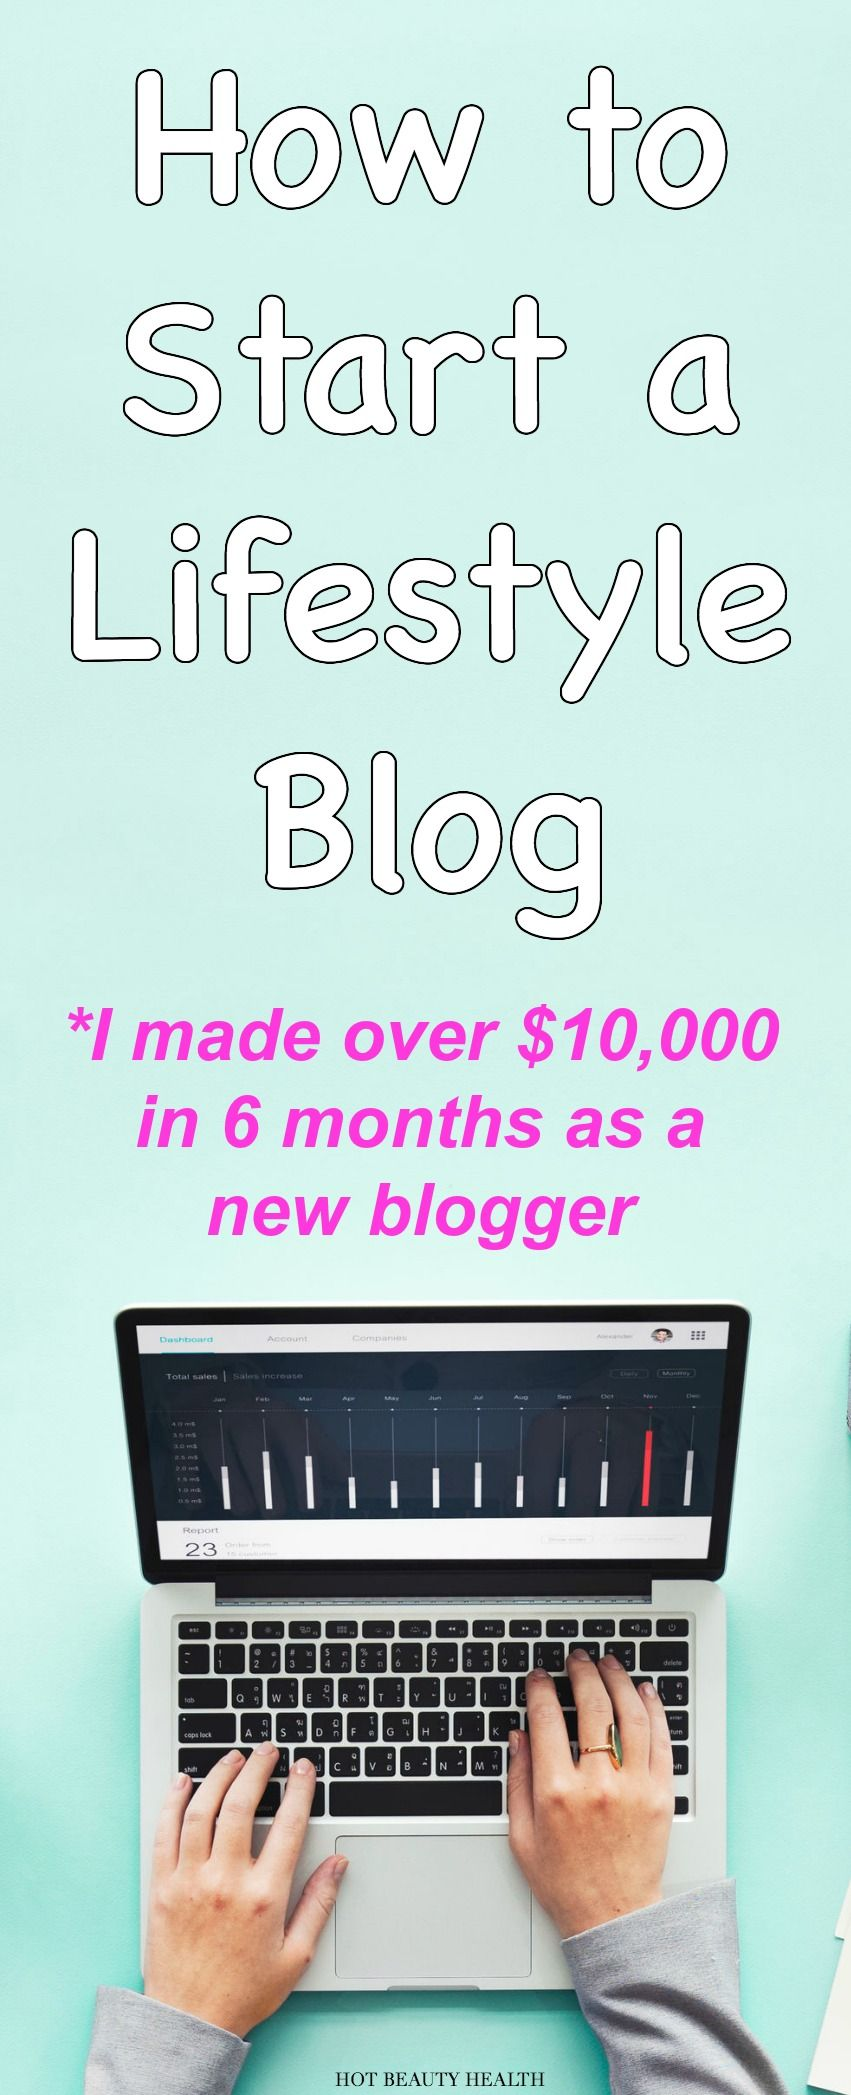 Starting a lifestyle blog is the best side hustle I have ever done to earn extra money and now I'm blogging full-time! I was able to set up and start a blog for really cheap and I made over $10,000 in the first six months as a newbie blogger. My step-by-step guide will walk you through the process on how to start a blog.